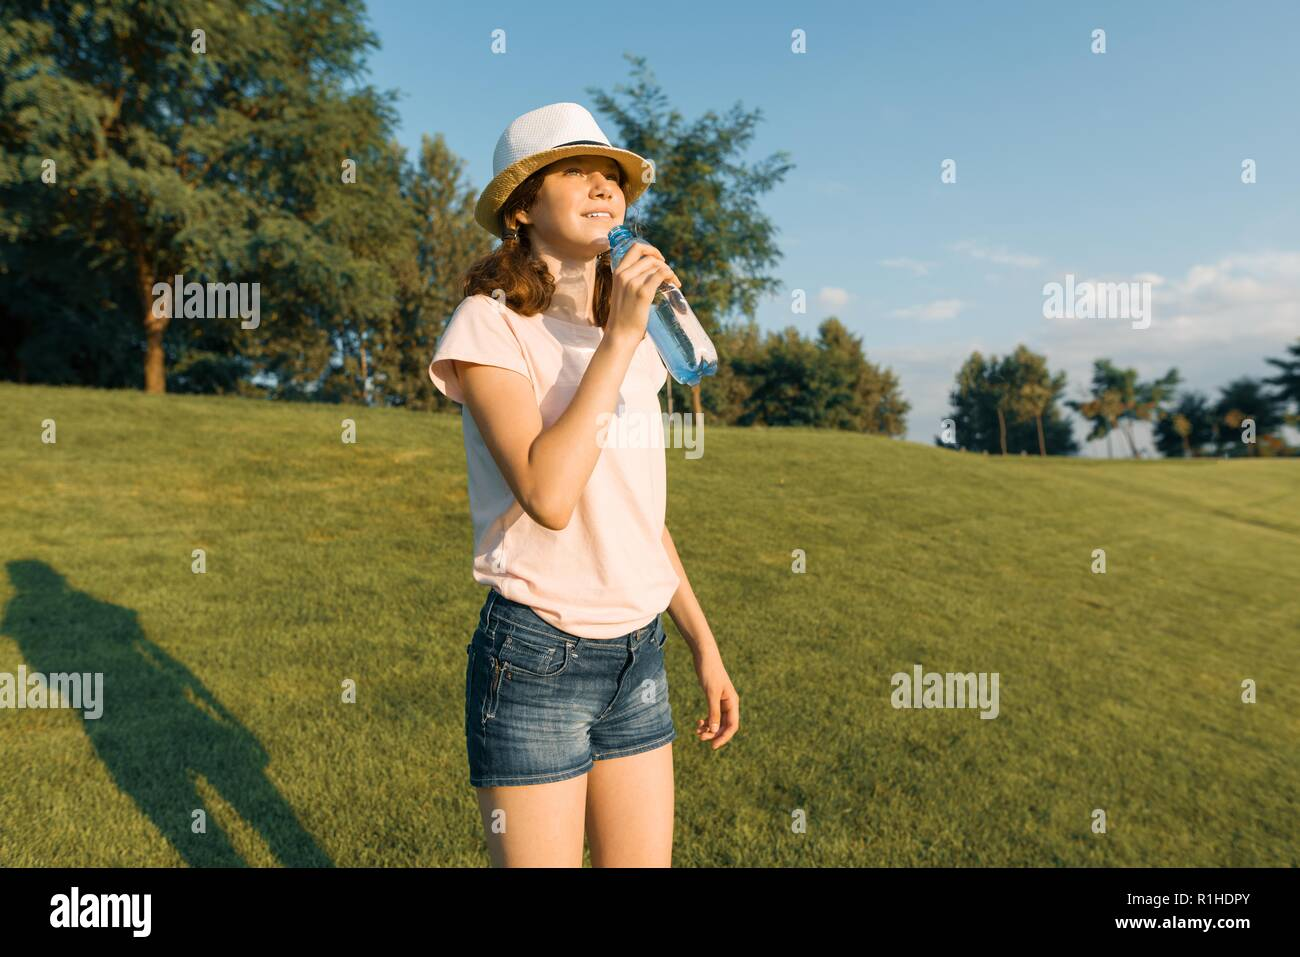 Young teenager girl drinks refreshing water from a bottle on a hot summer day, walking in the park, the golden hour. - Stock Image